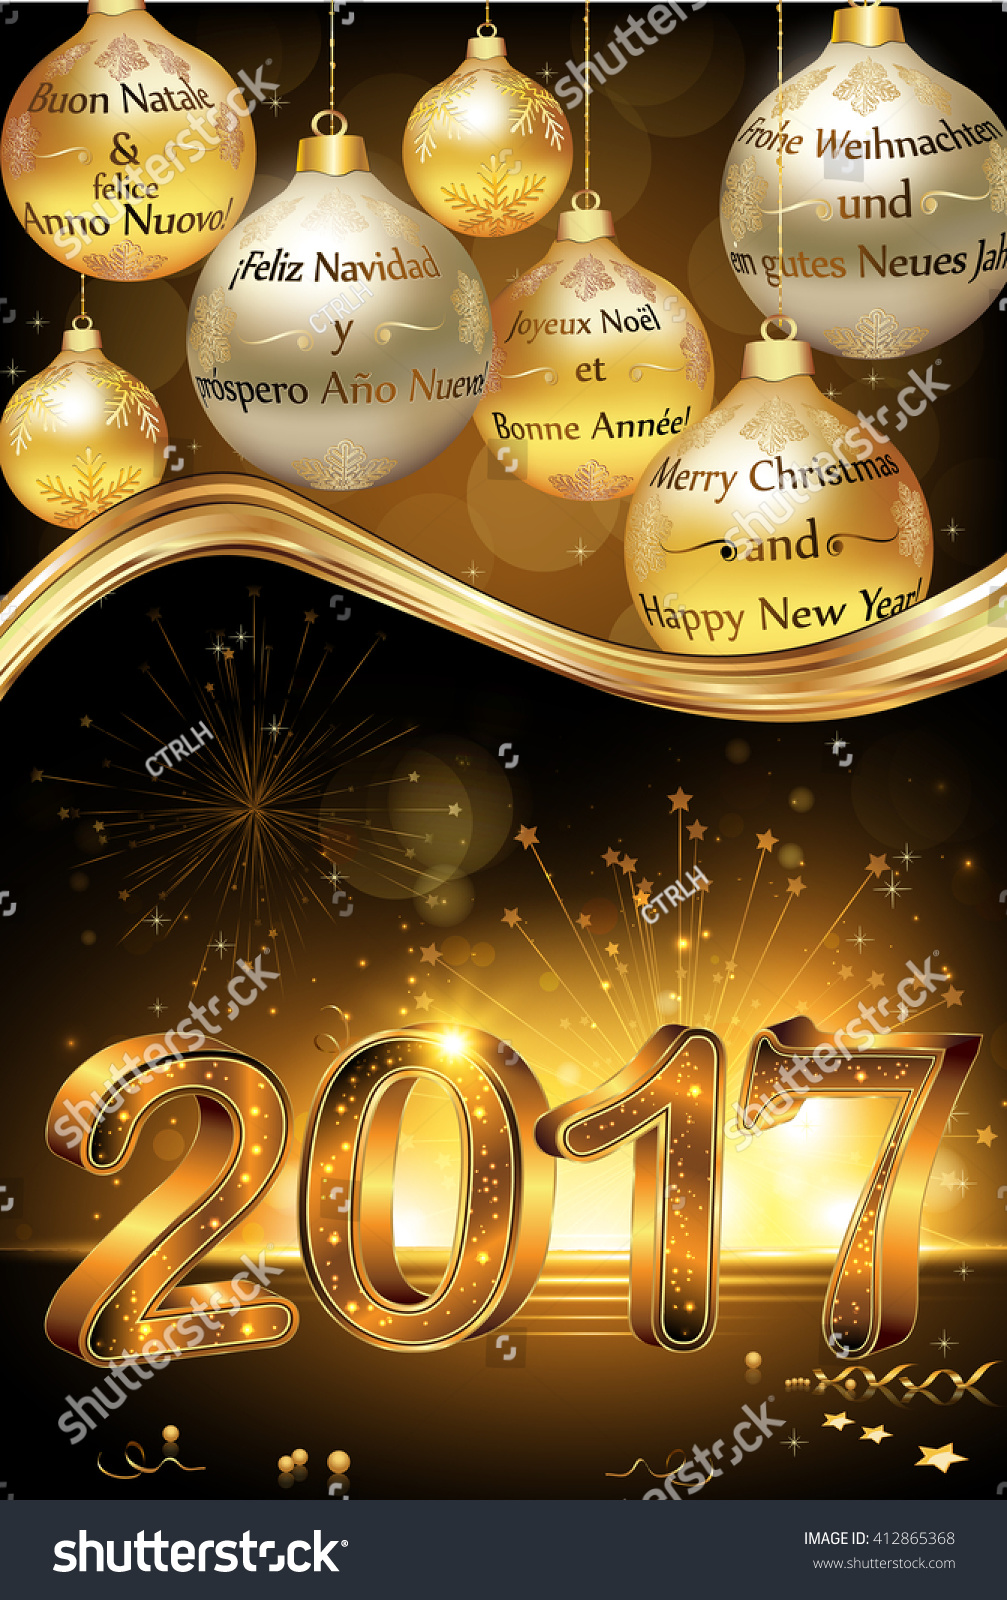 Happy new year 2017 greeting card stock vector 412865368 shutterstock happy new year 2017 greeting card card with message in many languages english m4hsunfo